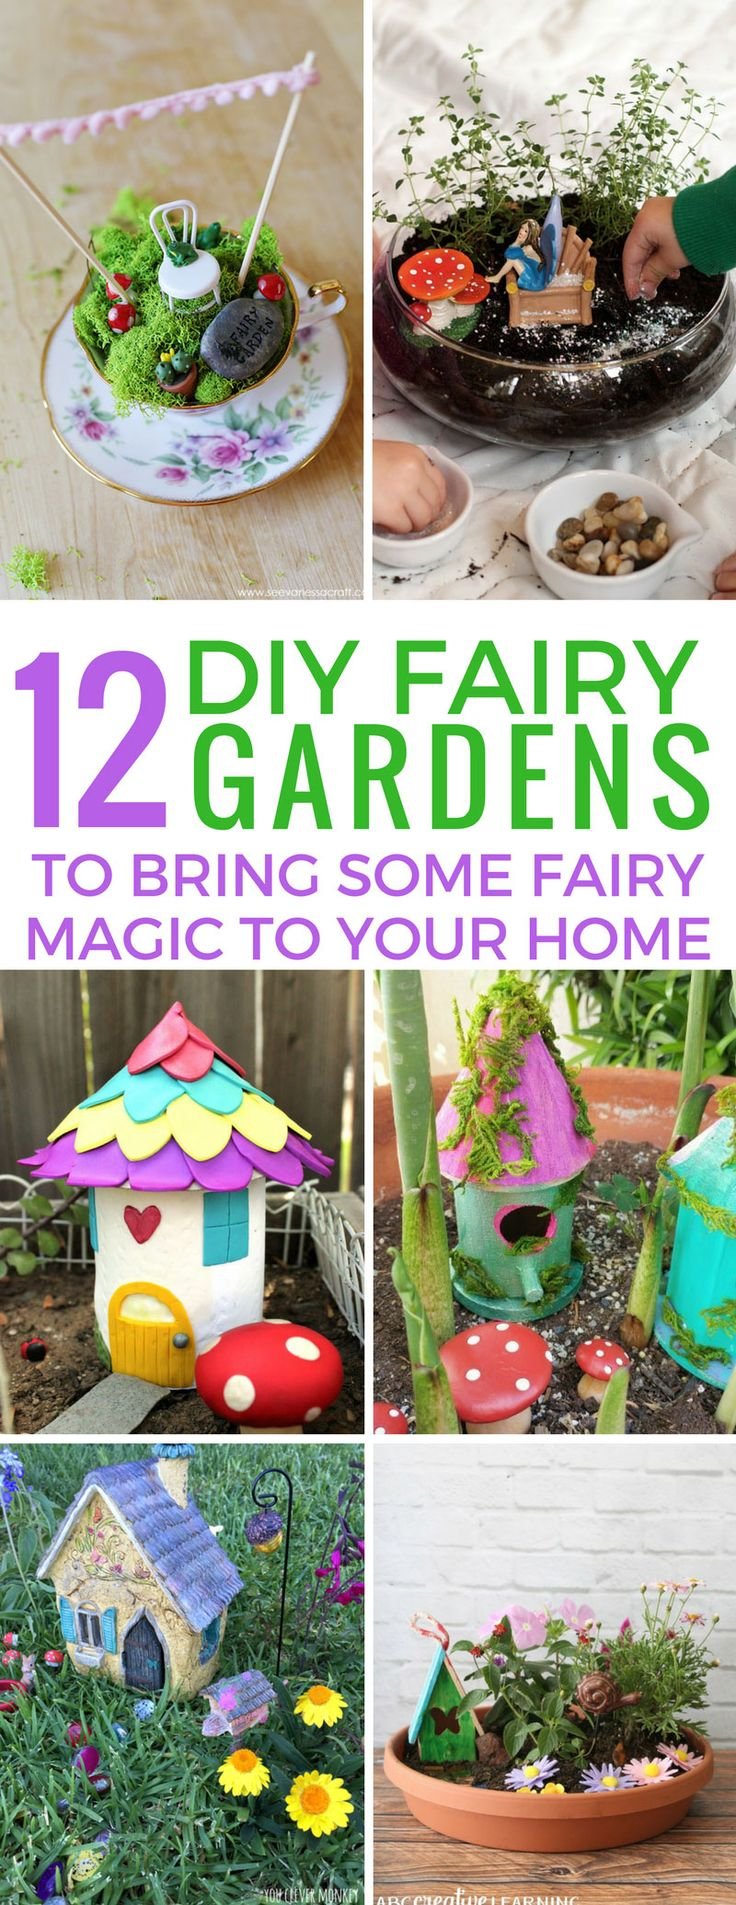 It's about time a pixie or two moved in so we can't wait to make one of these DIY fairy gardens! Thanks for sharing!